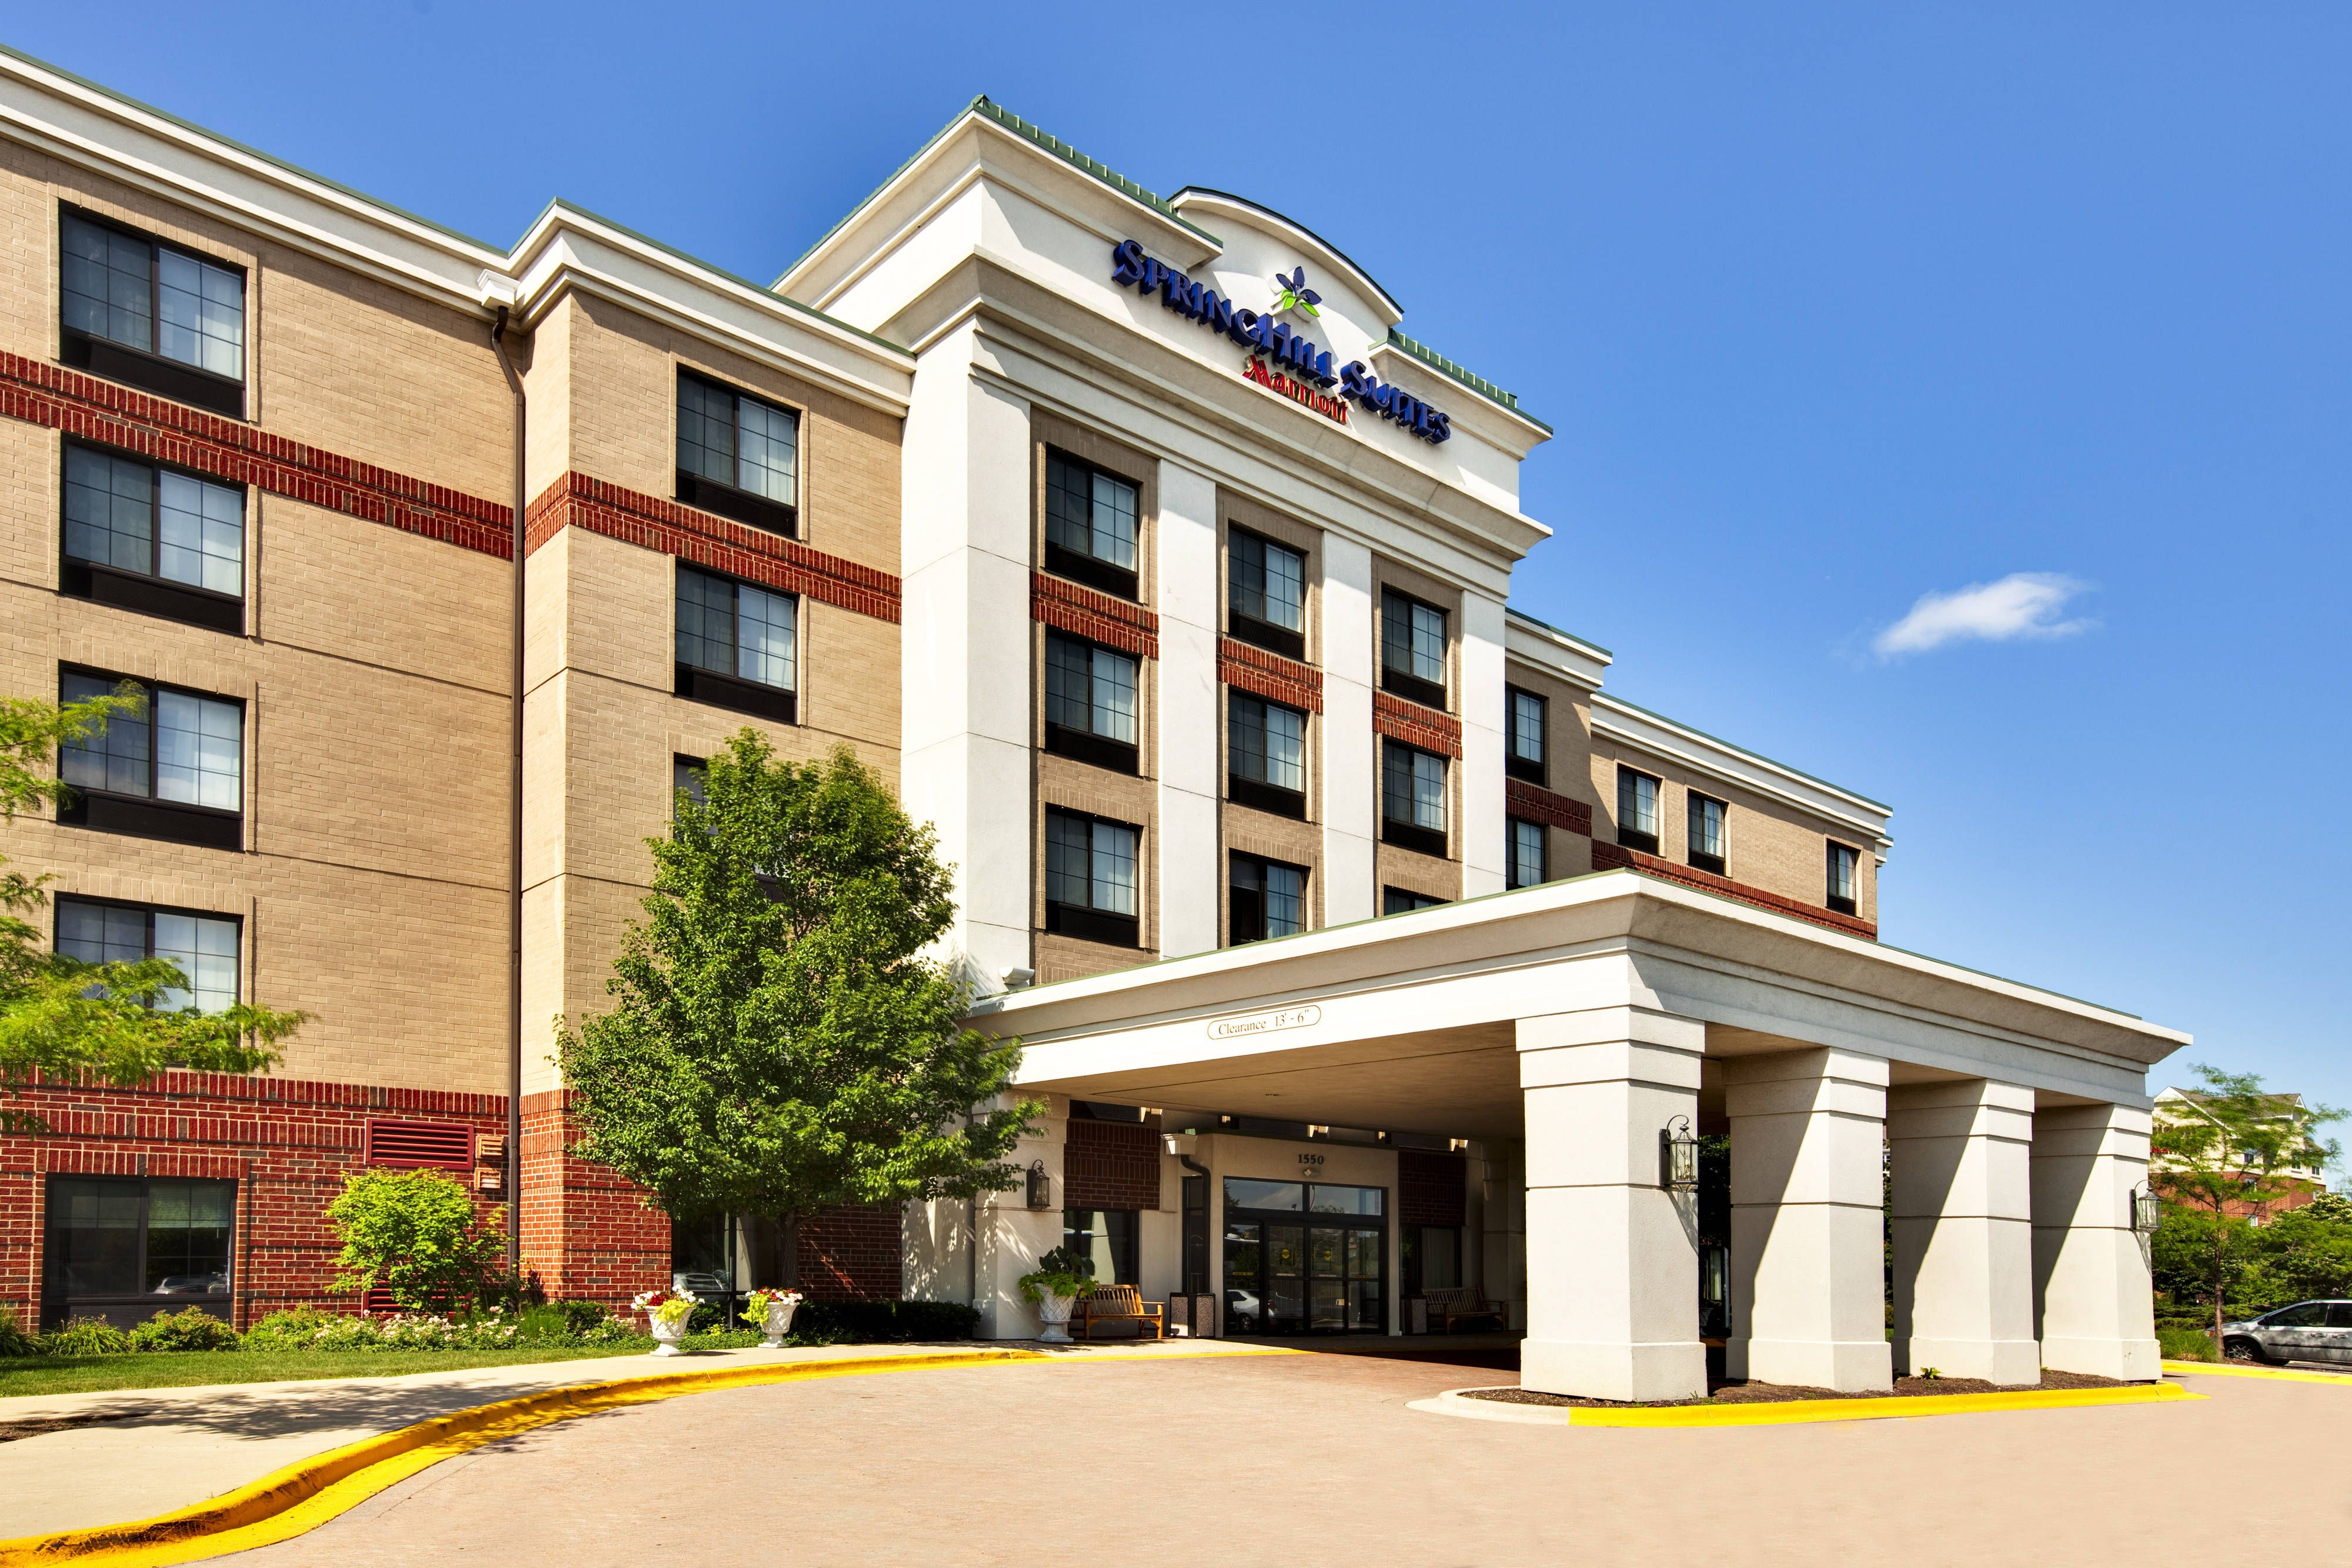 Springhill Suites Chicago Schaumburg Woodfield Mall Exterior